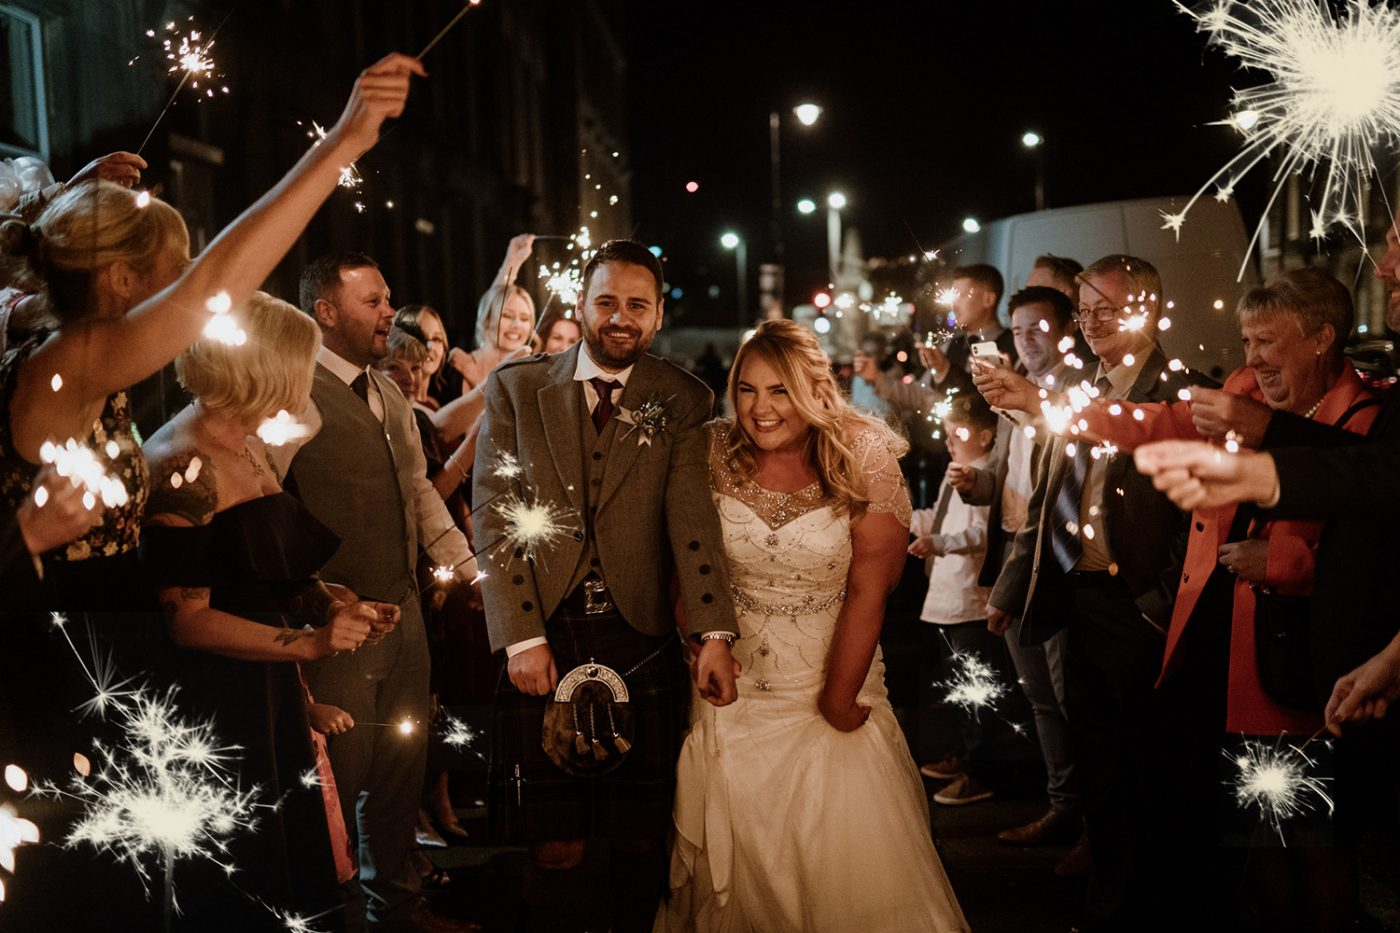 Wedding Photography by Chic Photo by Jacqui Paterson